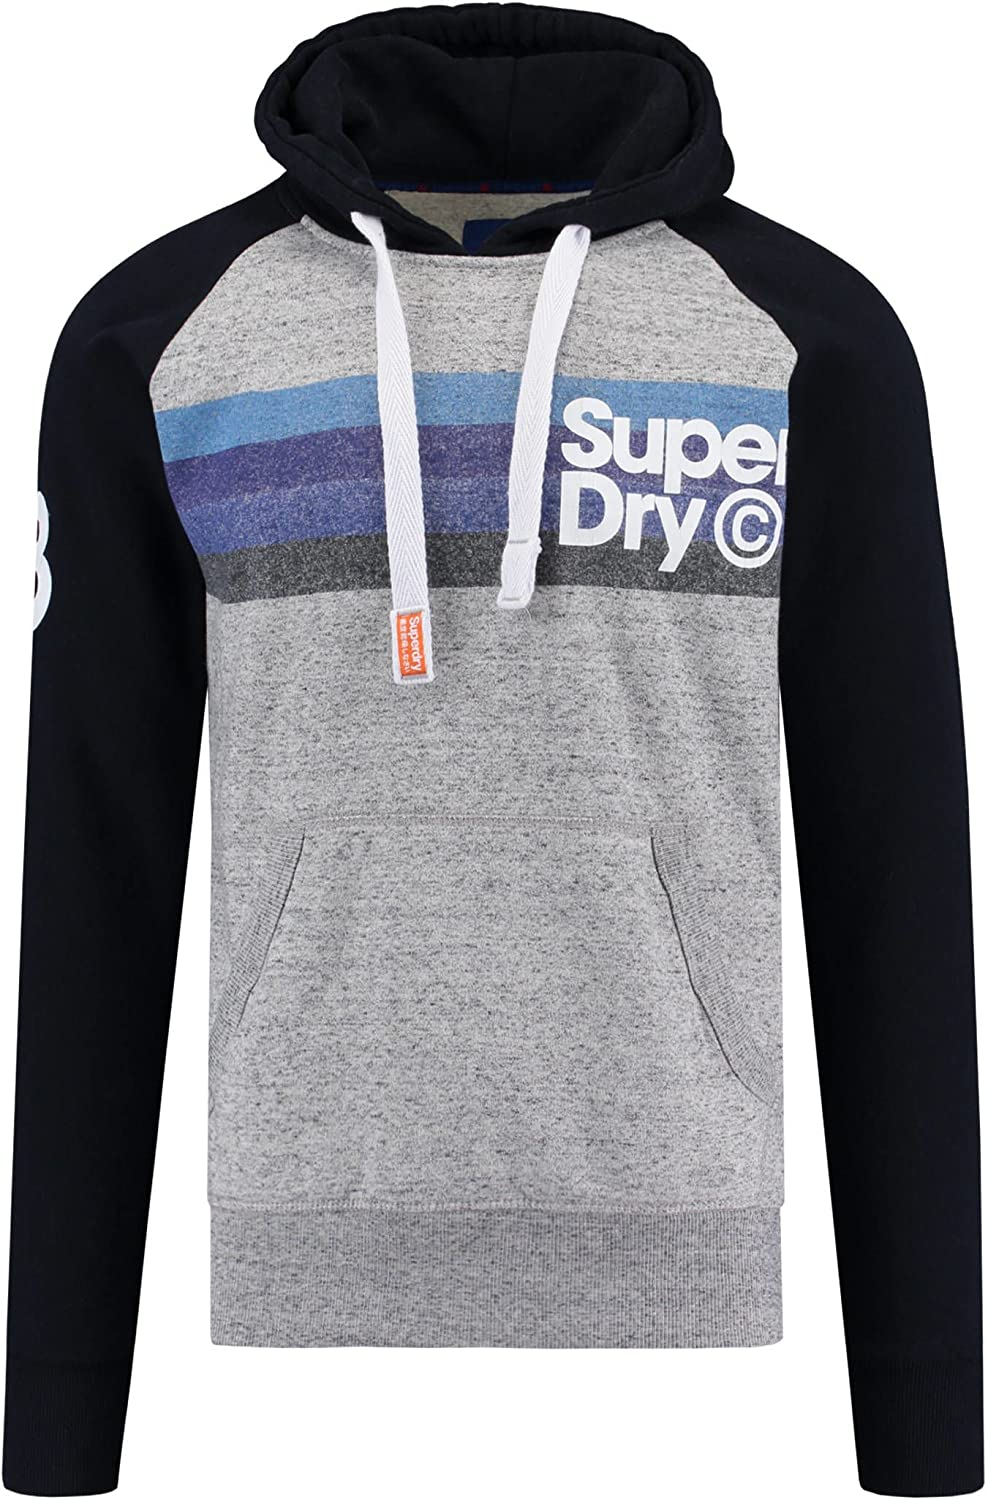 Tee shirt hommes, Sweat à capuche : Superdry Pull Cable Cape